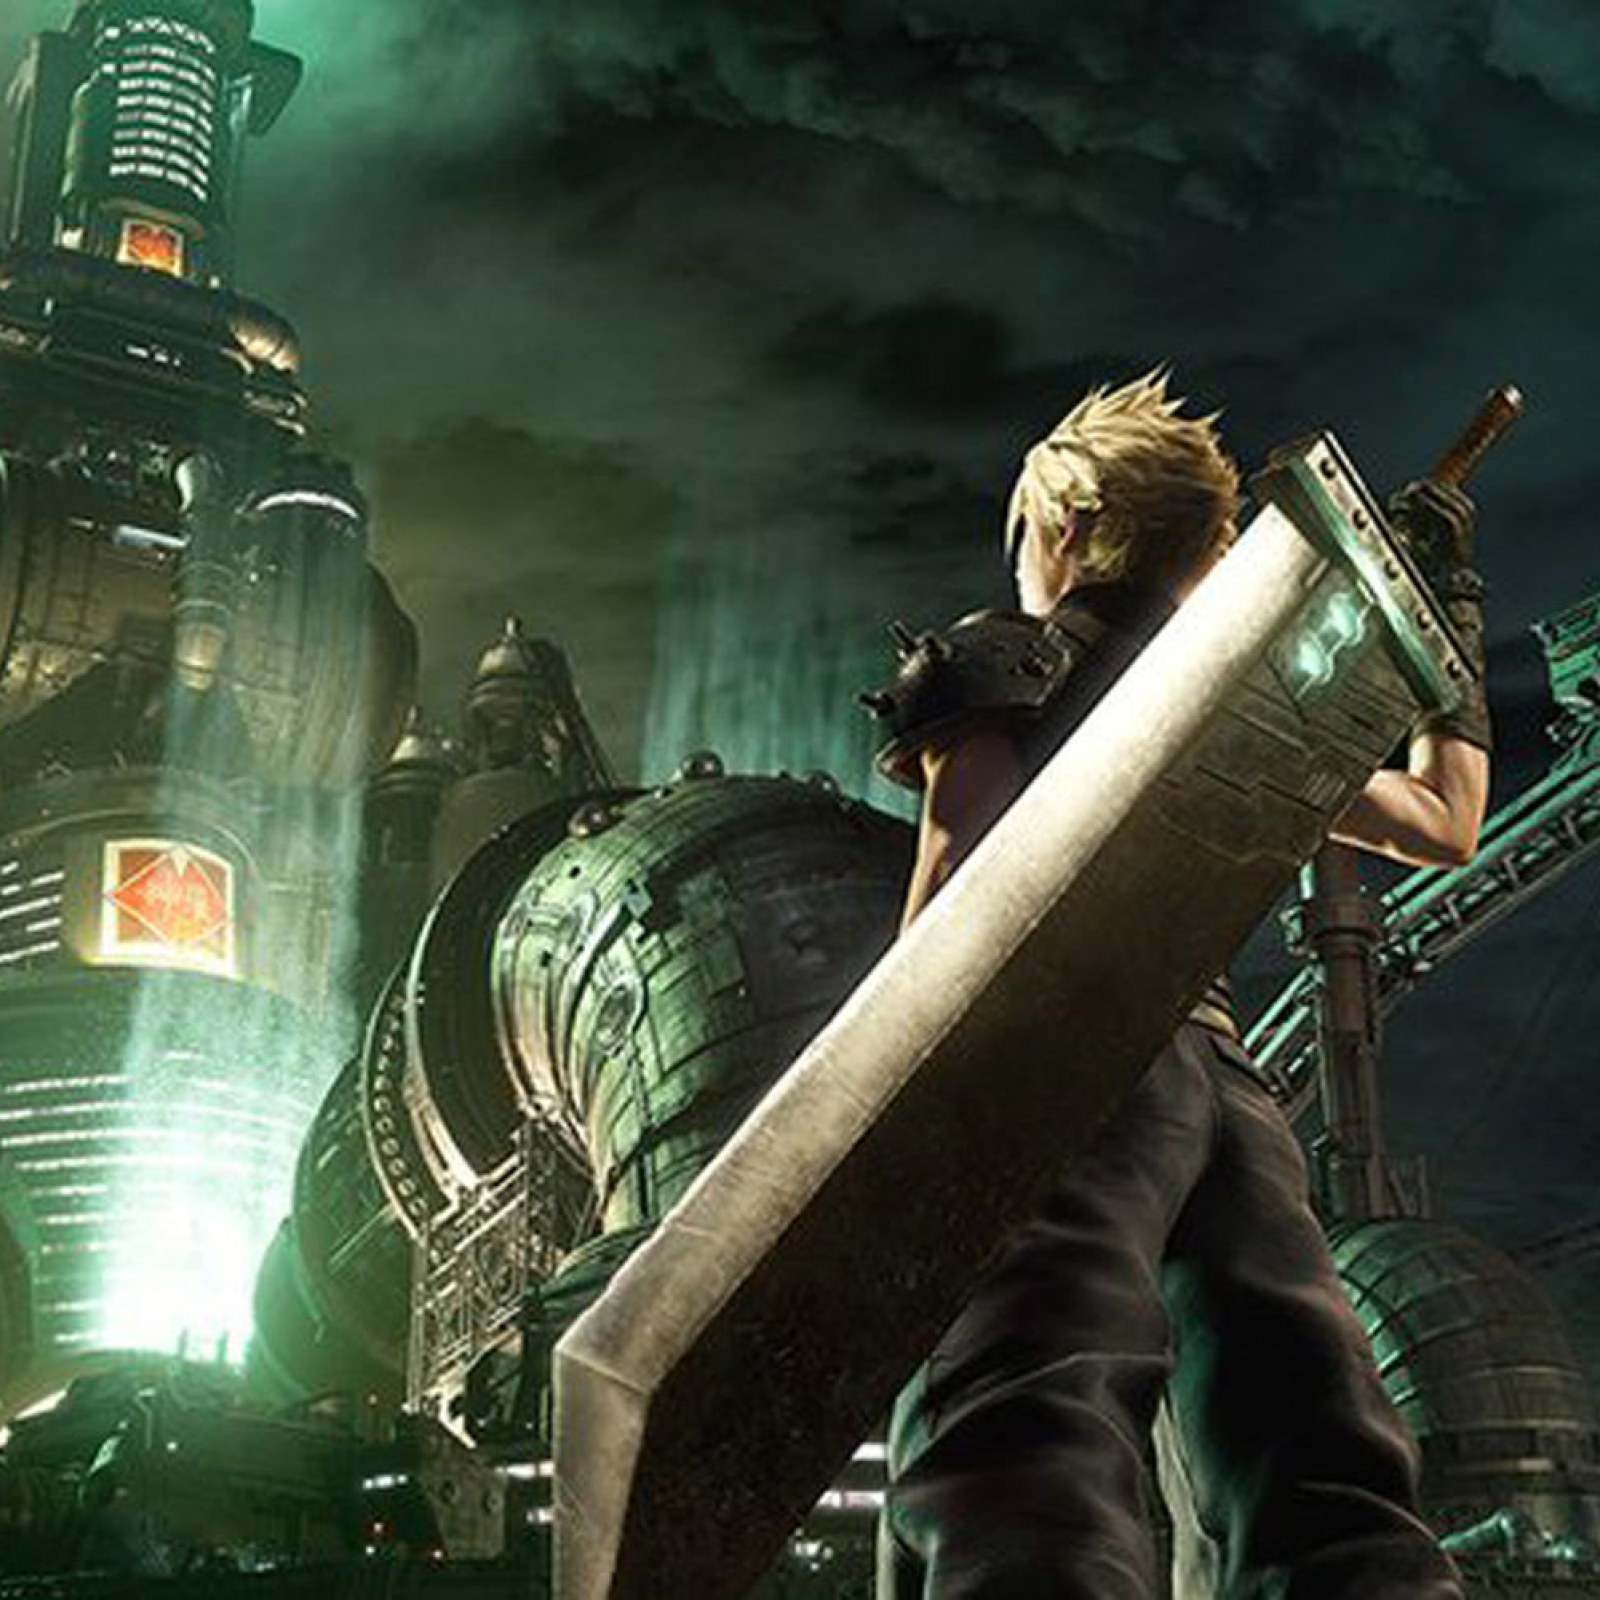 Here S How To Download And Play The Final Fantasy 7 Remake Demo